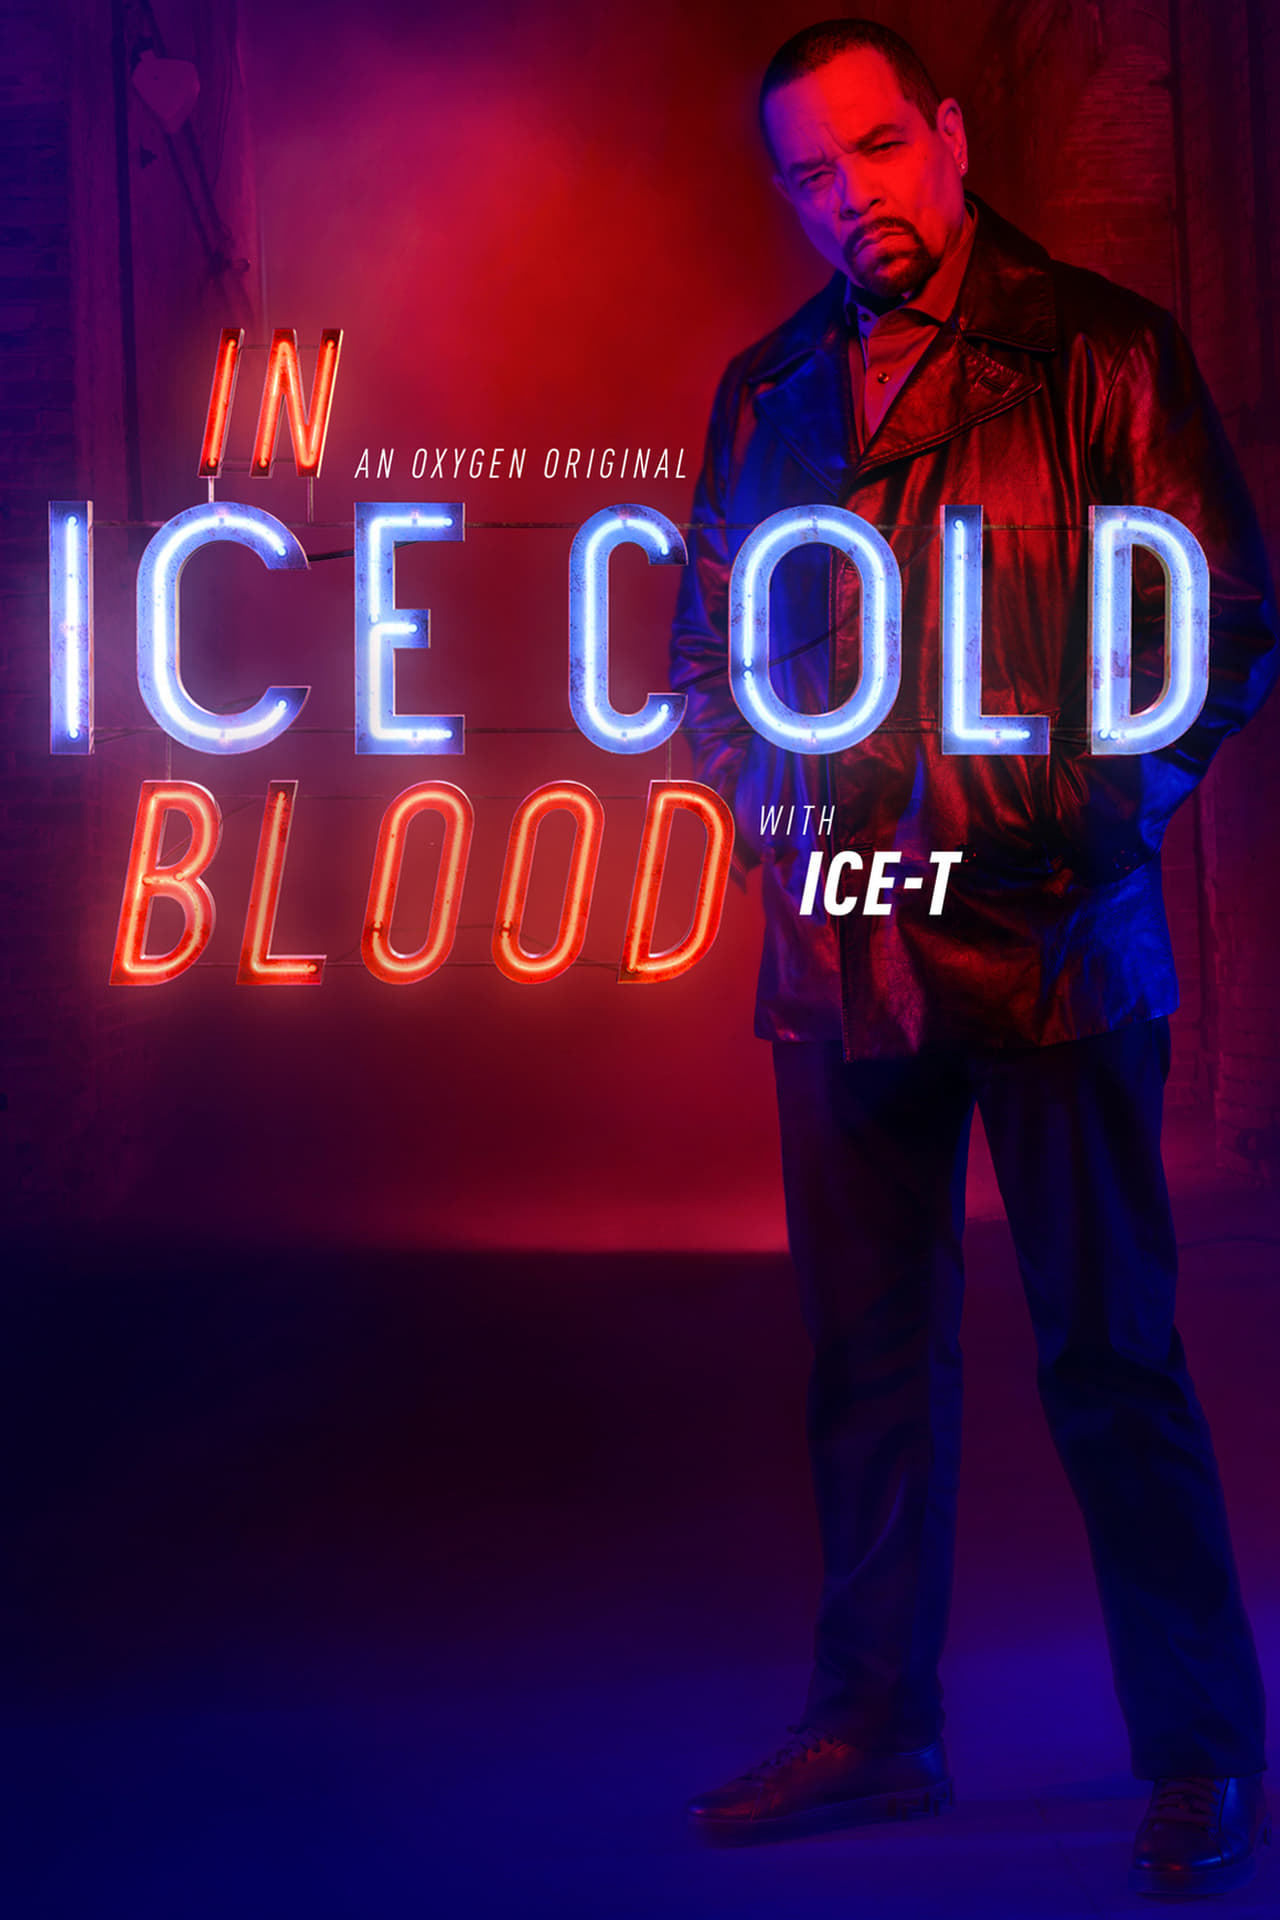 watch serie In Ice Cold Blood Season 2 online free